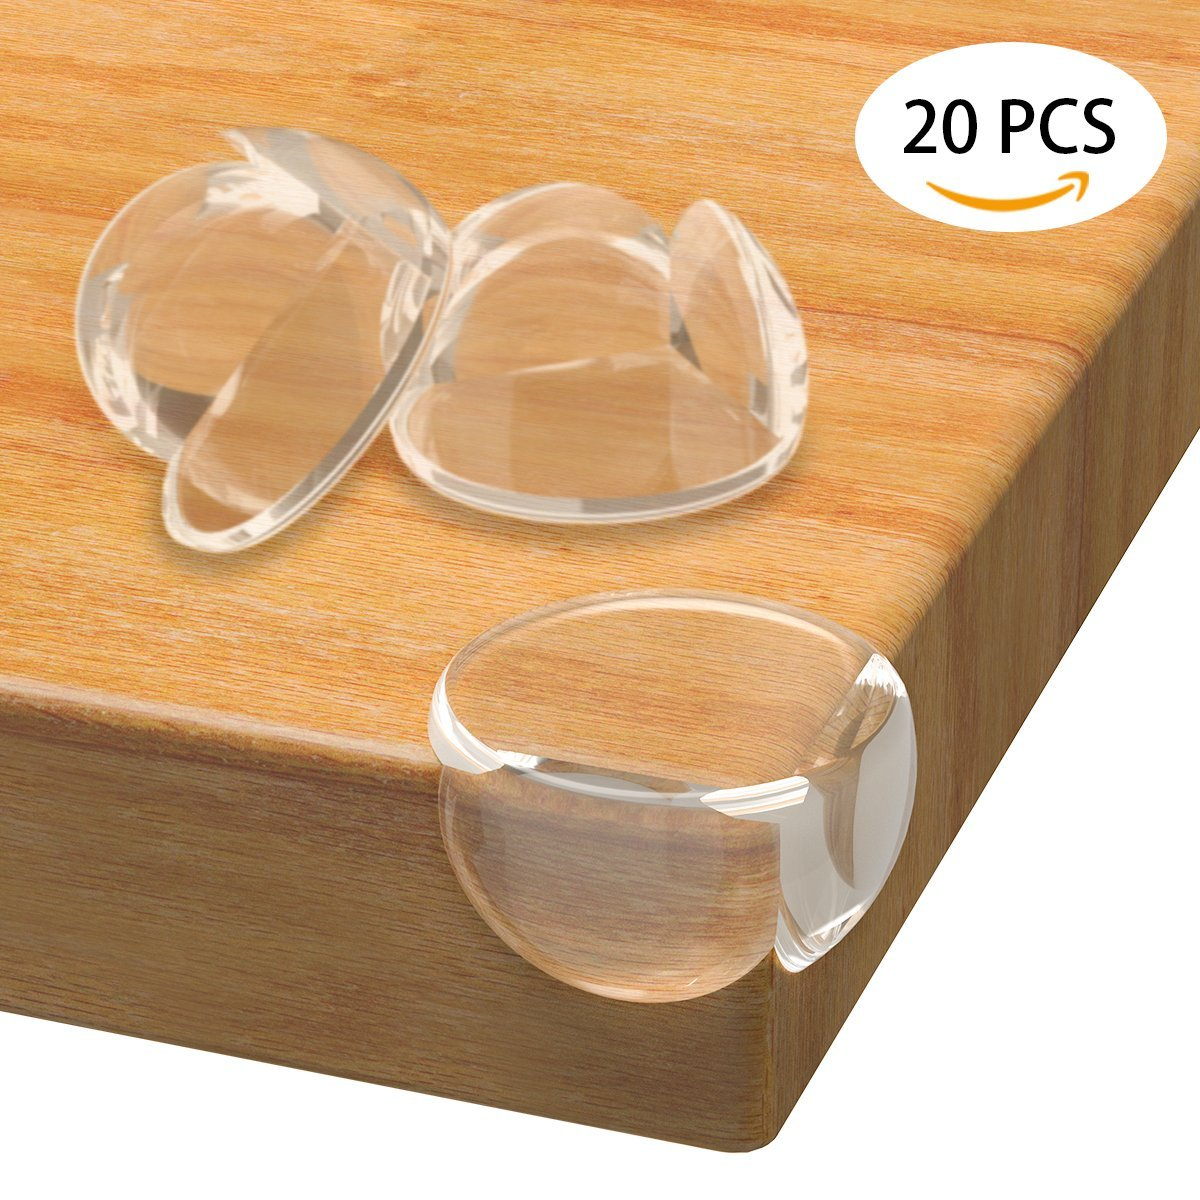 Fypo Corner Protectors, 20 Pcs Safety Table Corner Guard for Baby Kid, Transparent Soft Edge Pad with Strong Adhesive for Furniture SAOYH 01-C0070